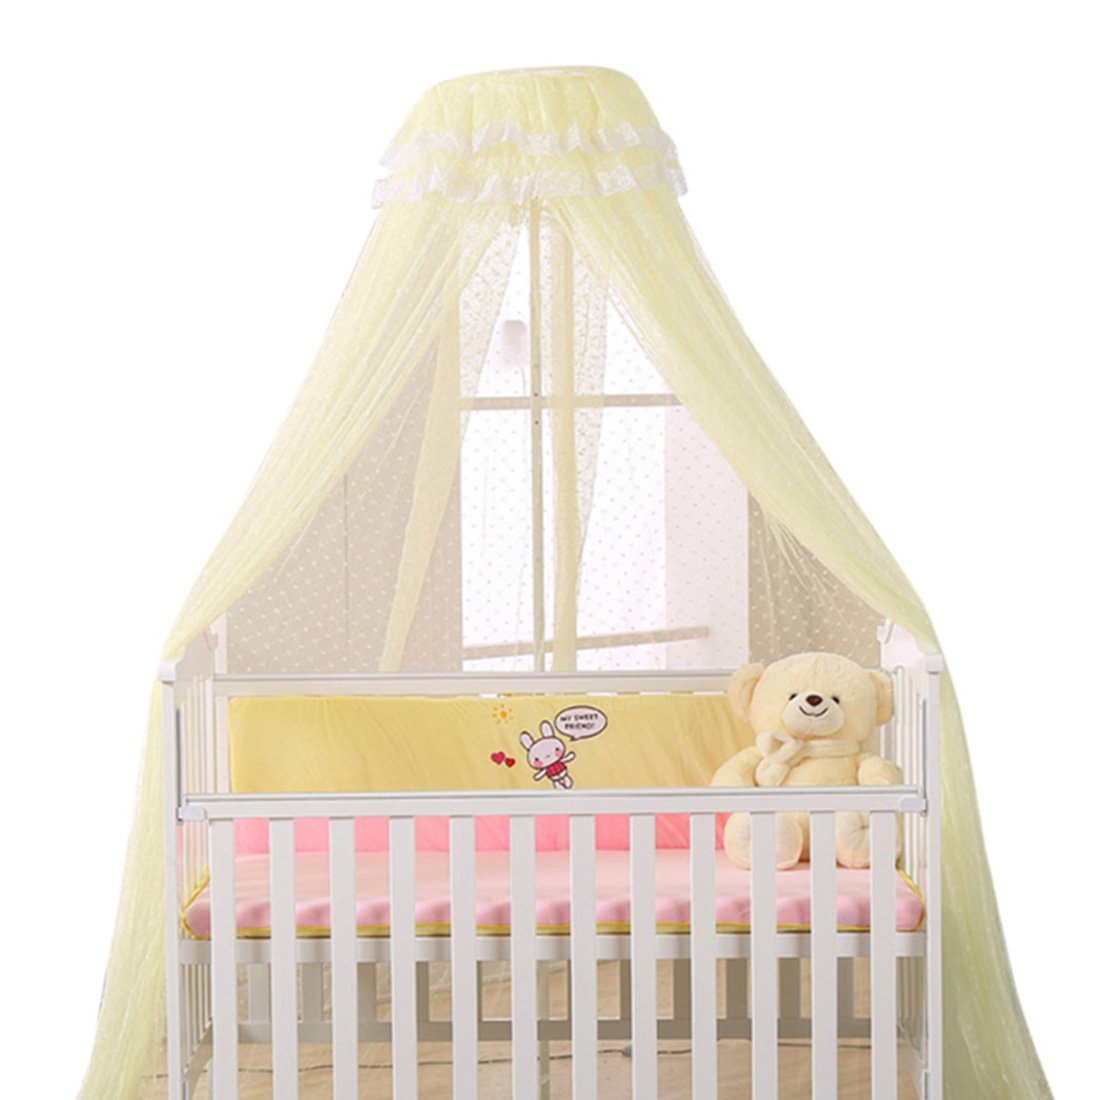 Beautylife88 Baby Mosquito Net Kids Toddler Bed Crib Canopy Netting Blue2